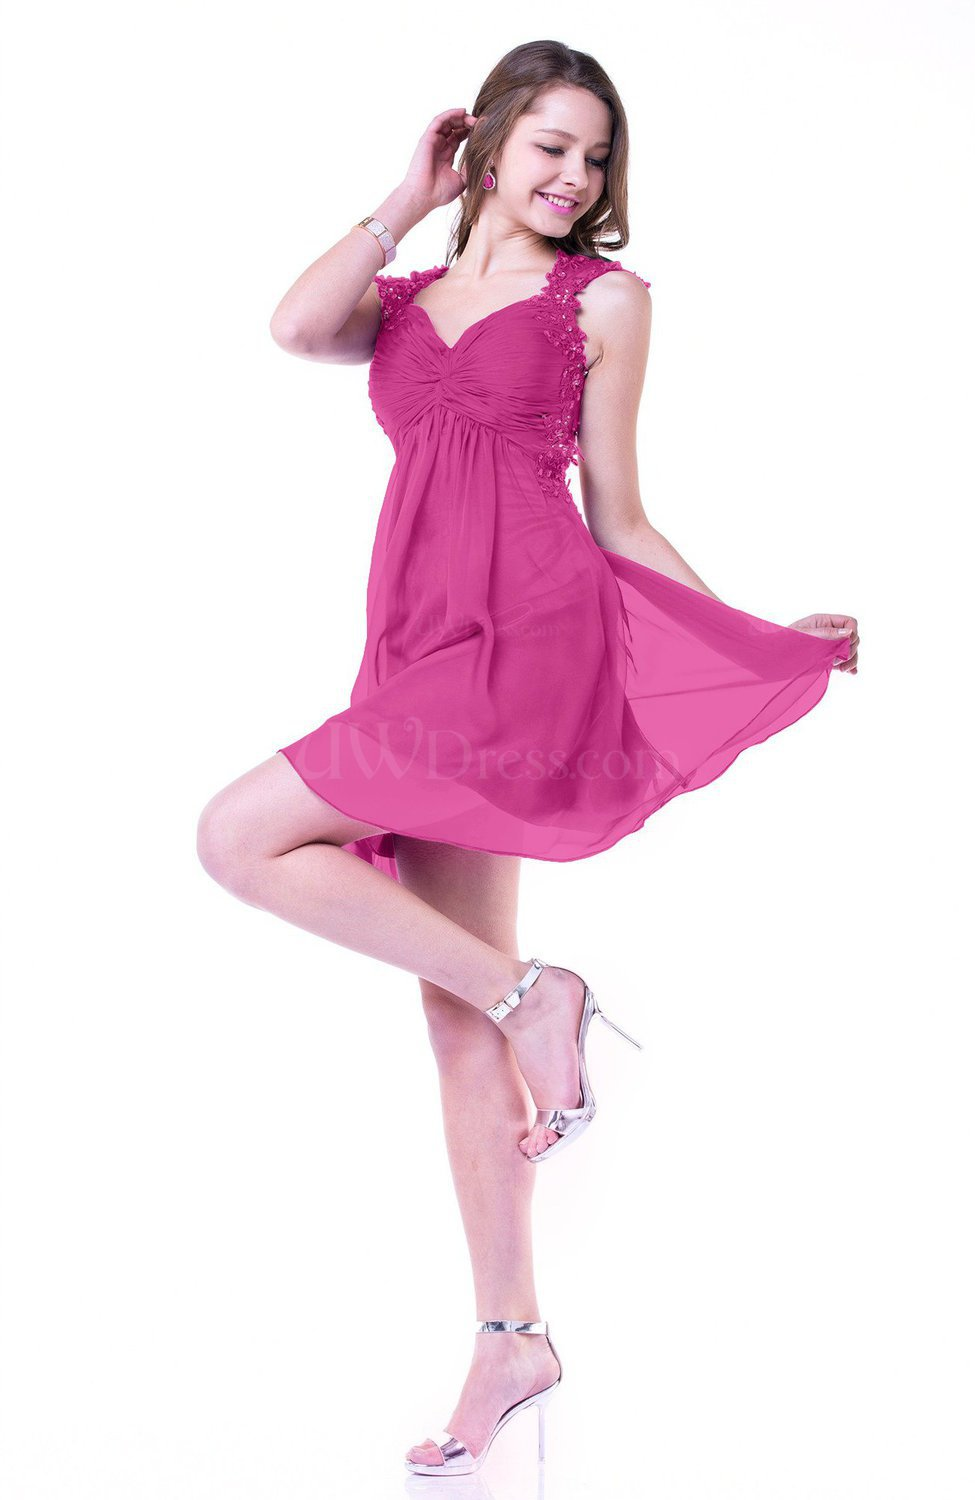 e43dfcf6c98d Hot Pink Hawaiian Thick Straps Sleeveless Short Sequin Plus Size Prom  Dresses (Style D30955)